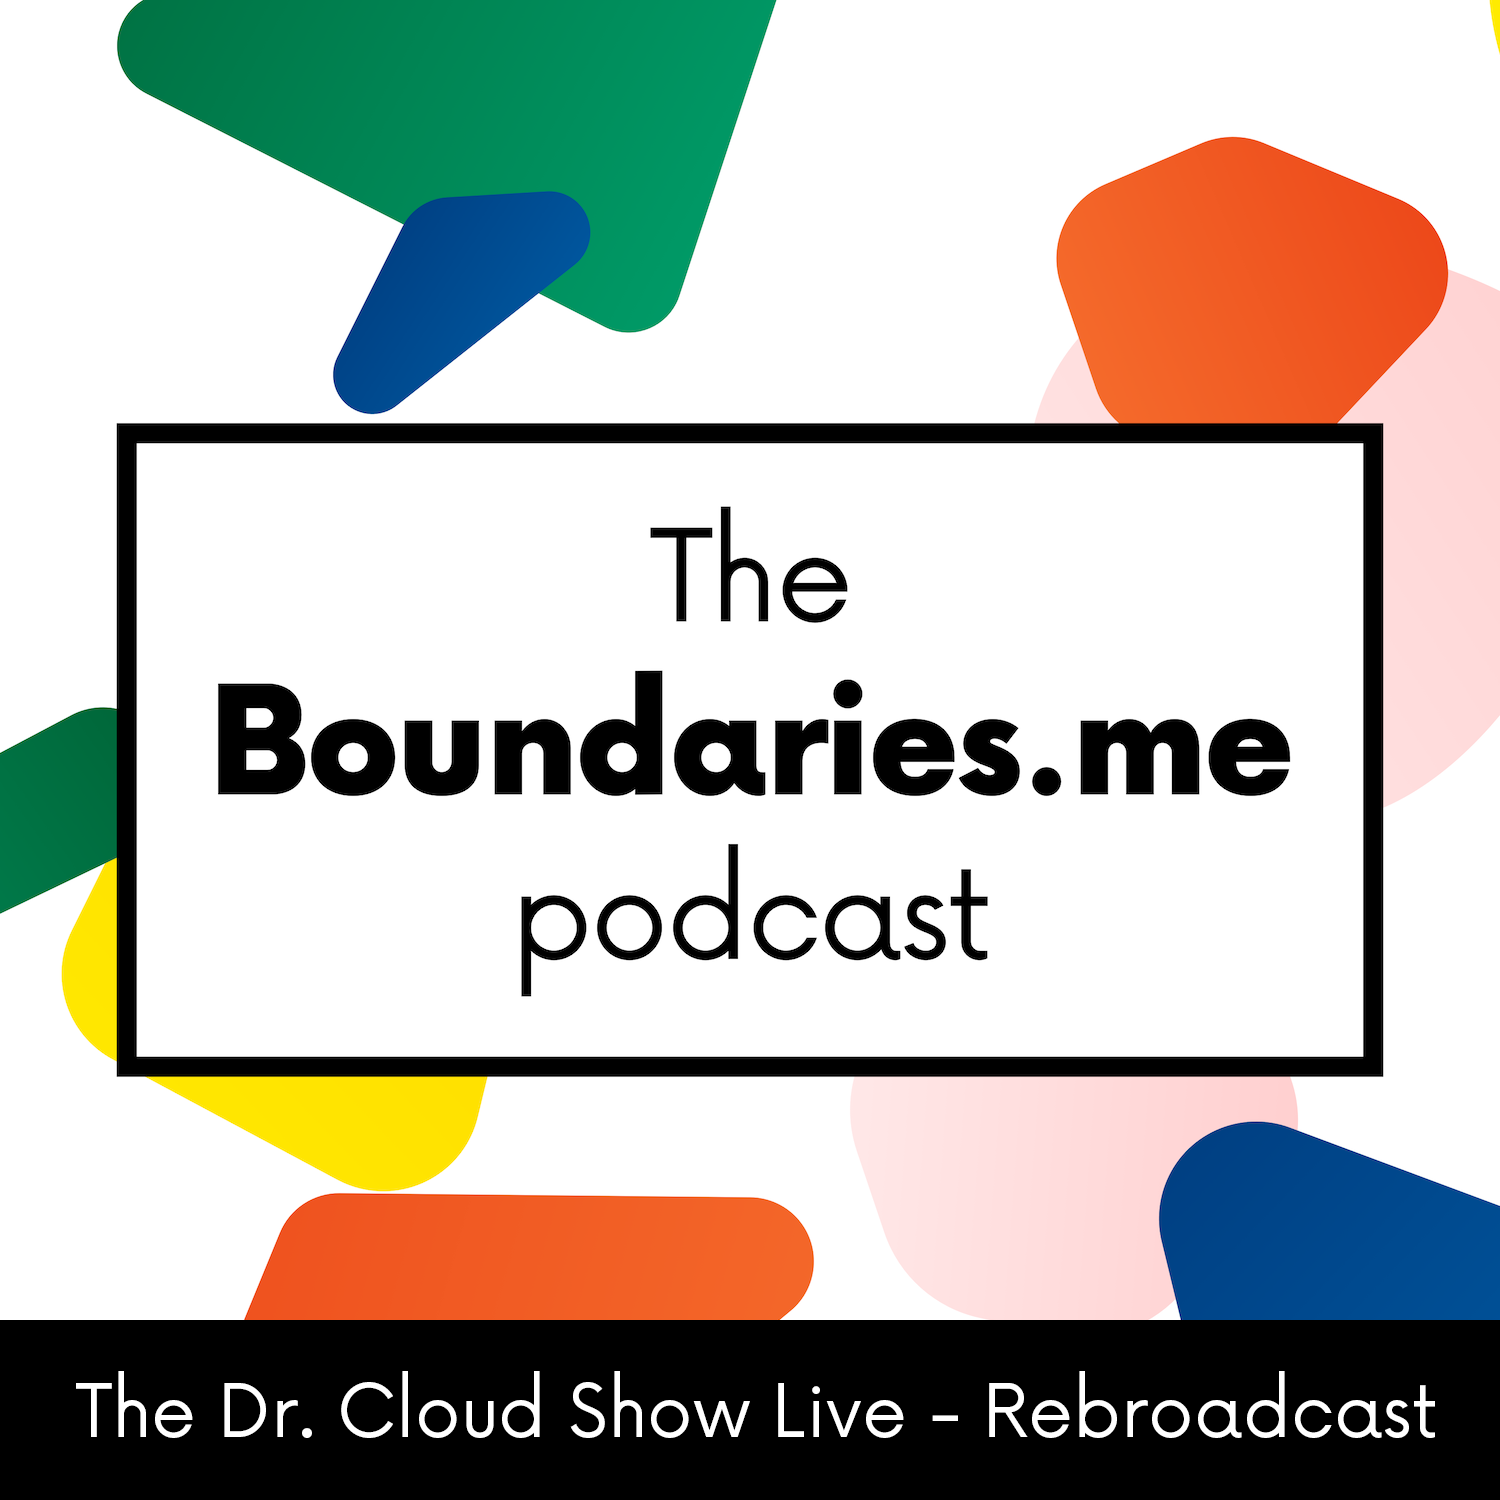 Episode 220 - The Dr. Cloud Show Live - The Wake You Leave Behind - 4-27-2021